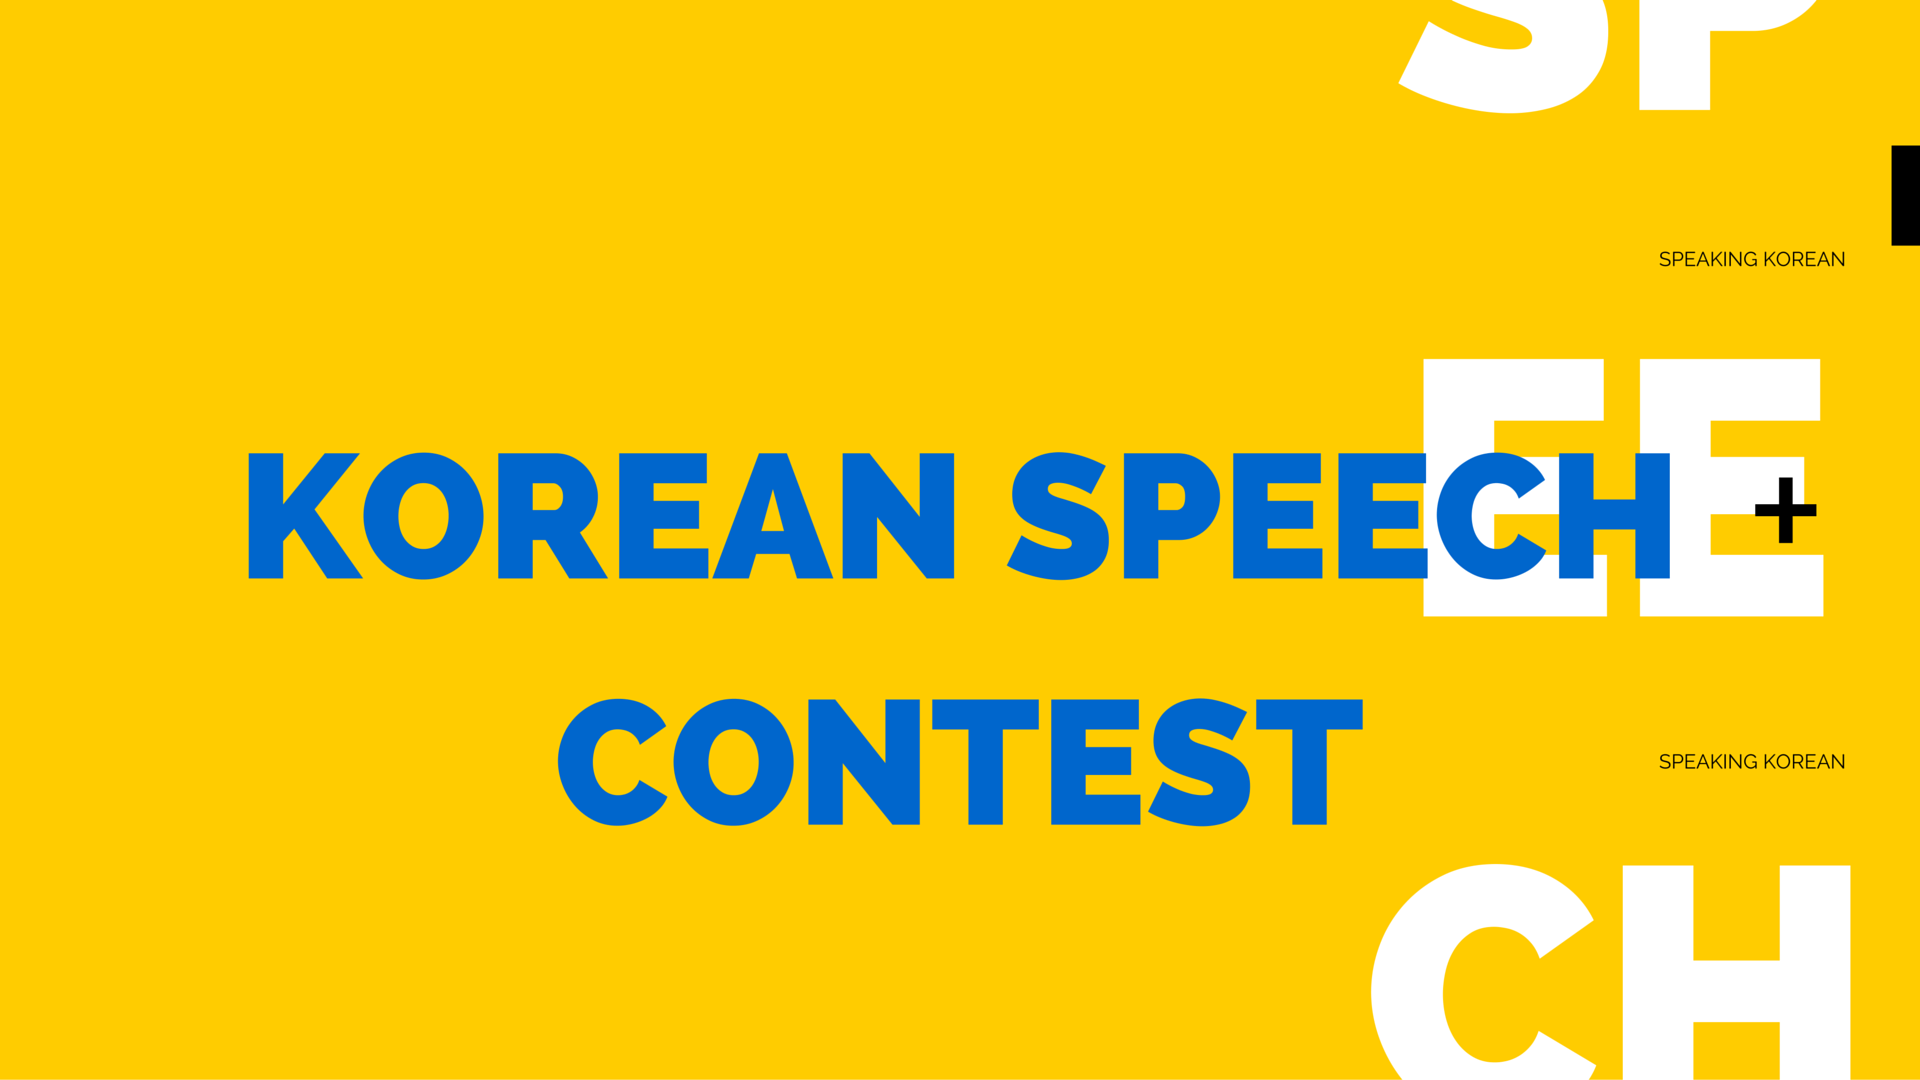 Korean Speech Contest